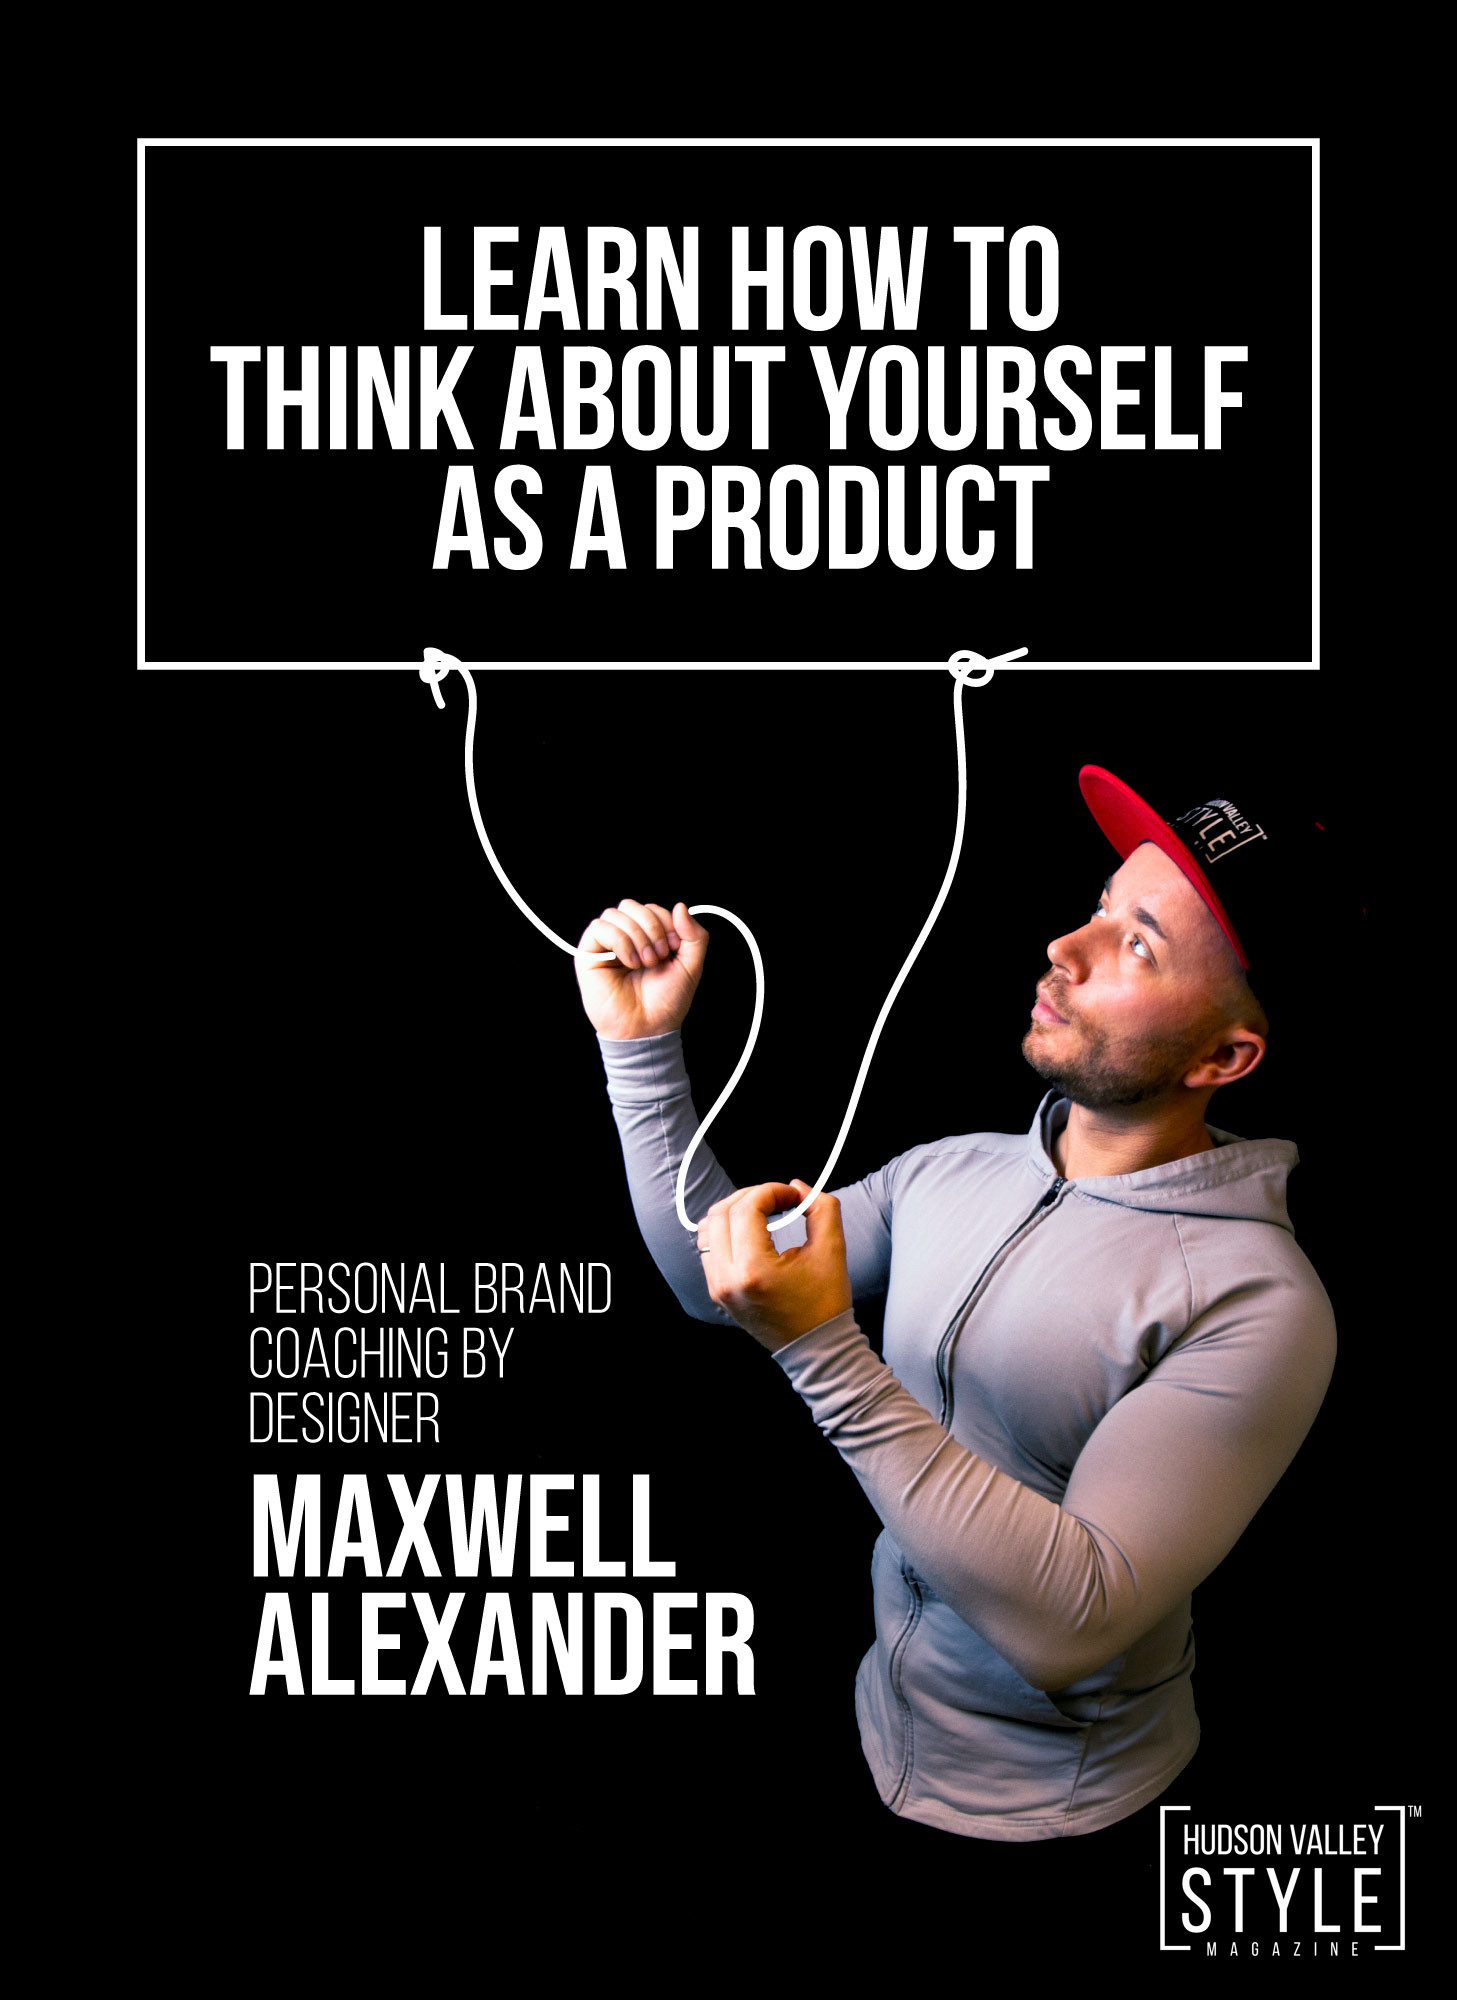 Learn how to think about Yourself - Personal Branding Coaching by Designer Maxwell Alexander